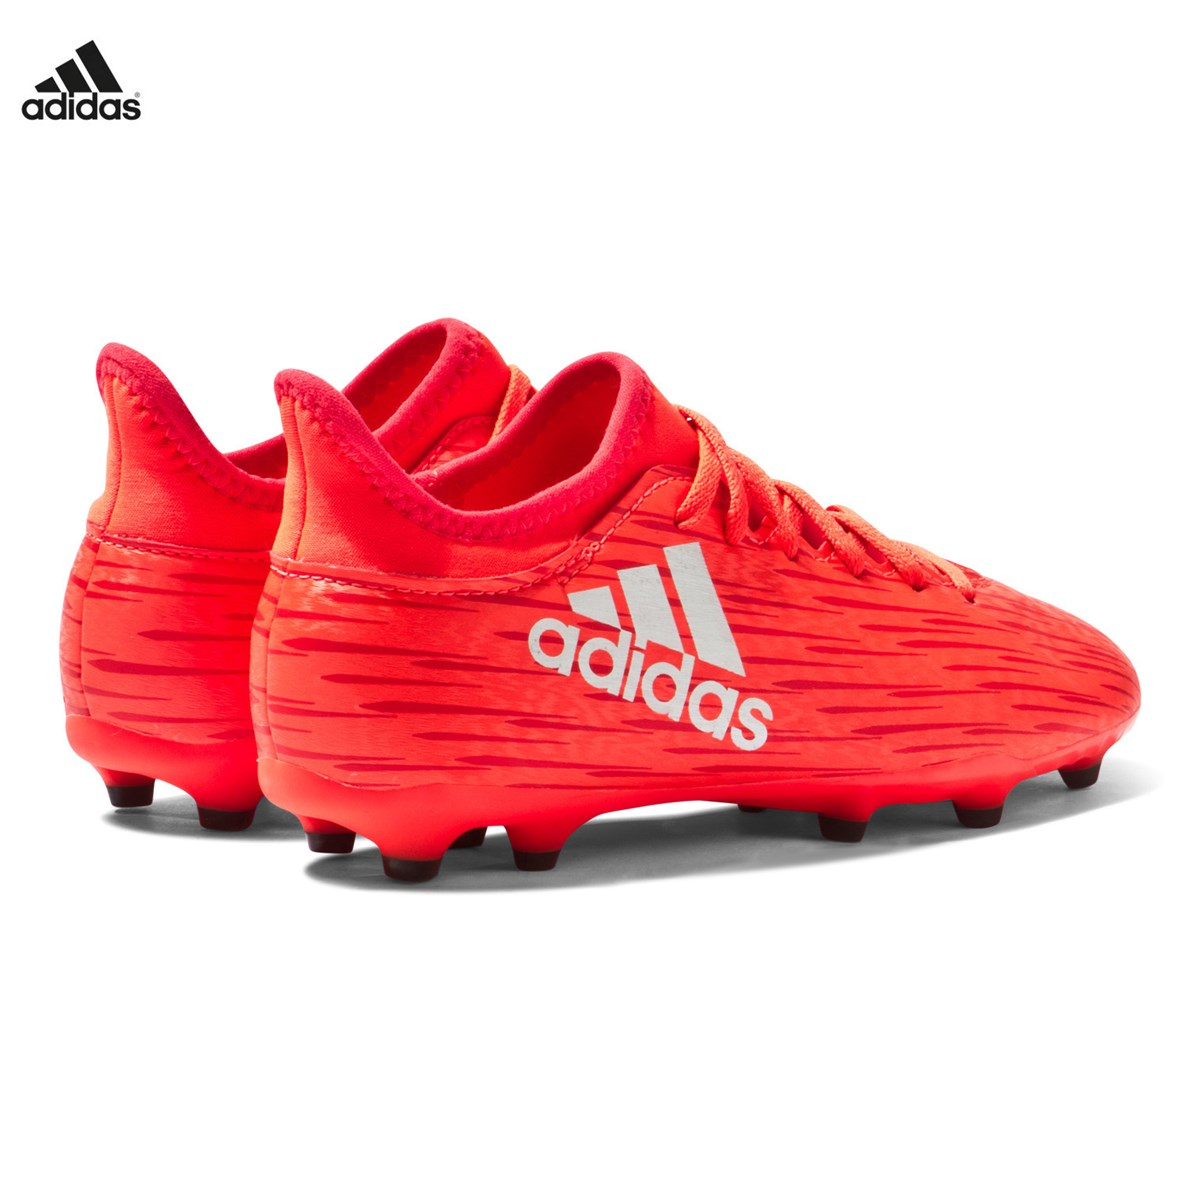 9393ccd2293 adidas Performance Red X 16.3 Firm Ground Football Boots